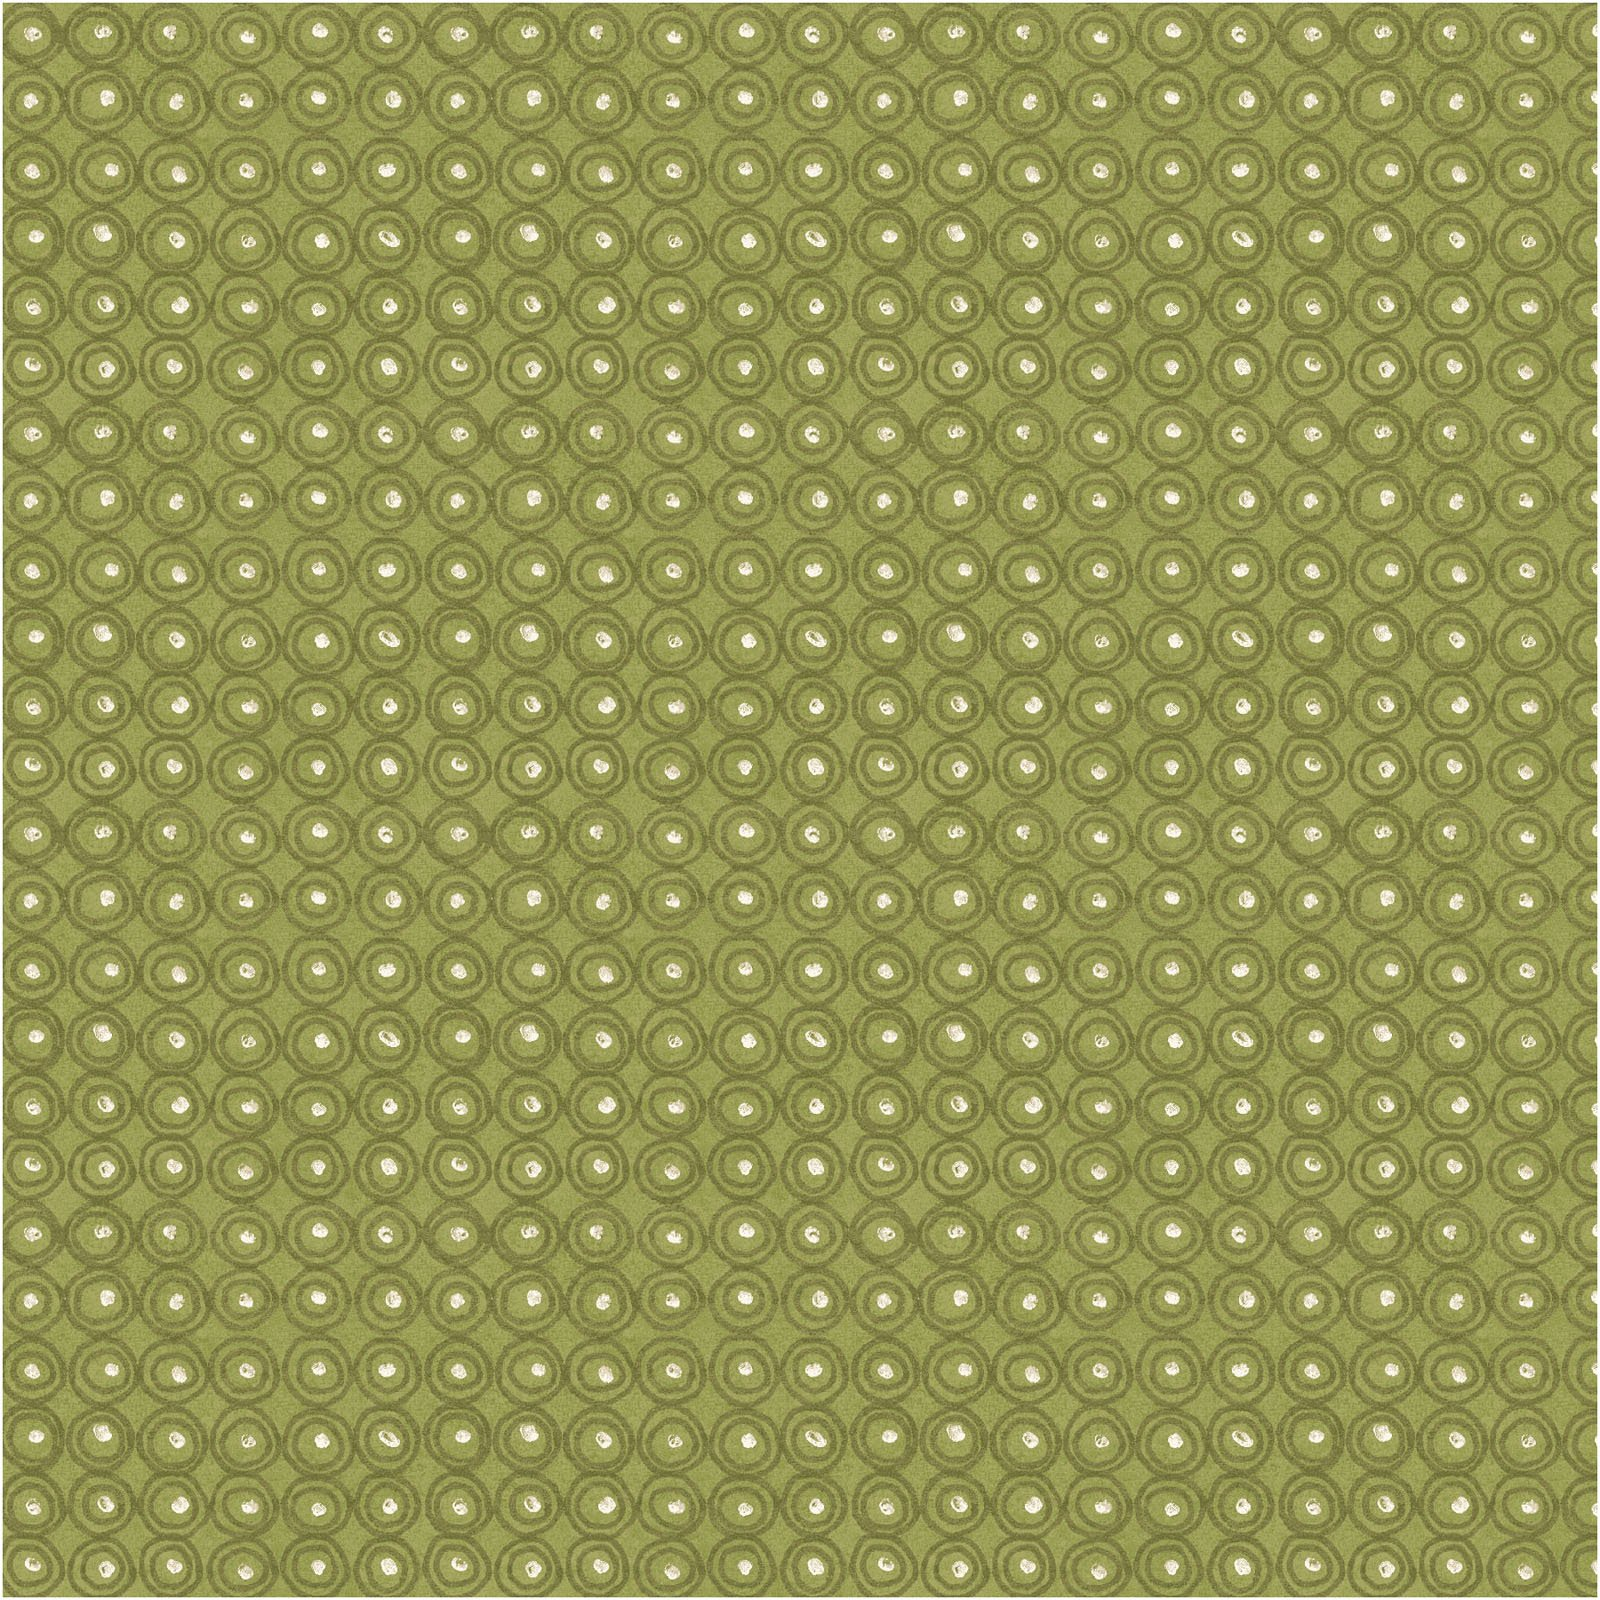 FAFL-4190 G - FARAH FLOWERS BY CRYSTAL DESIGNS CIRCLES GREEN